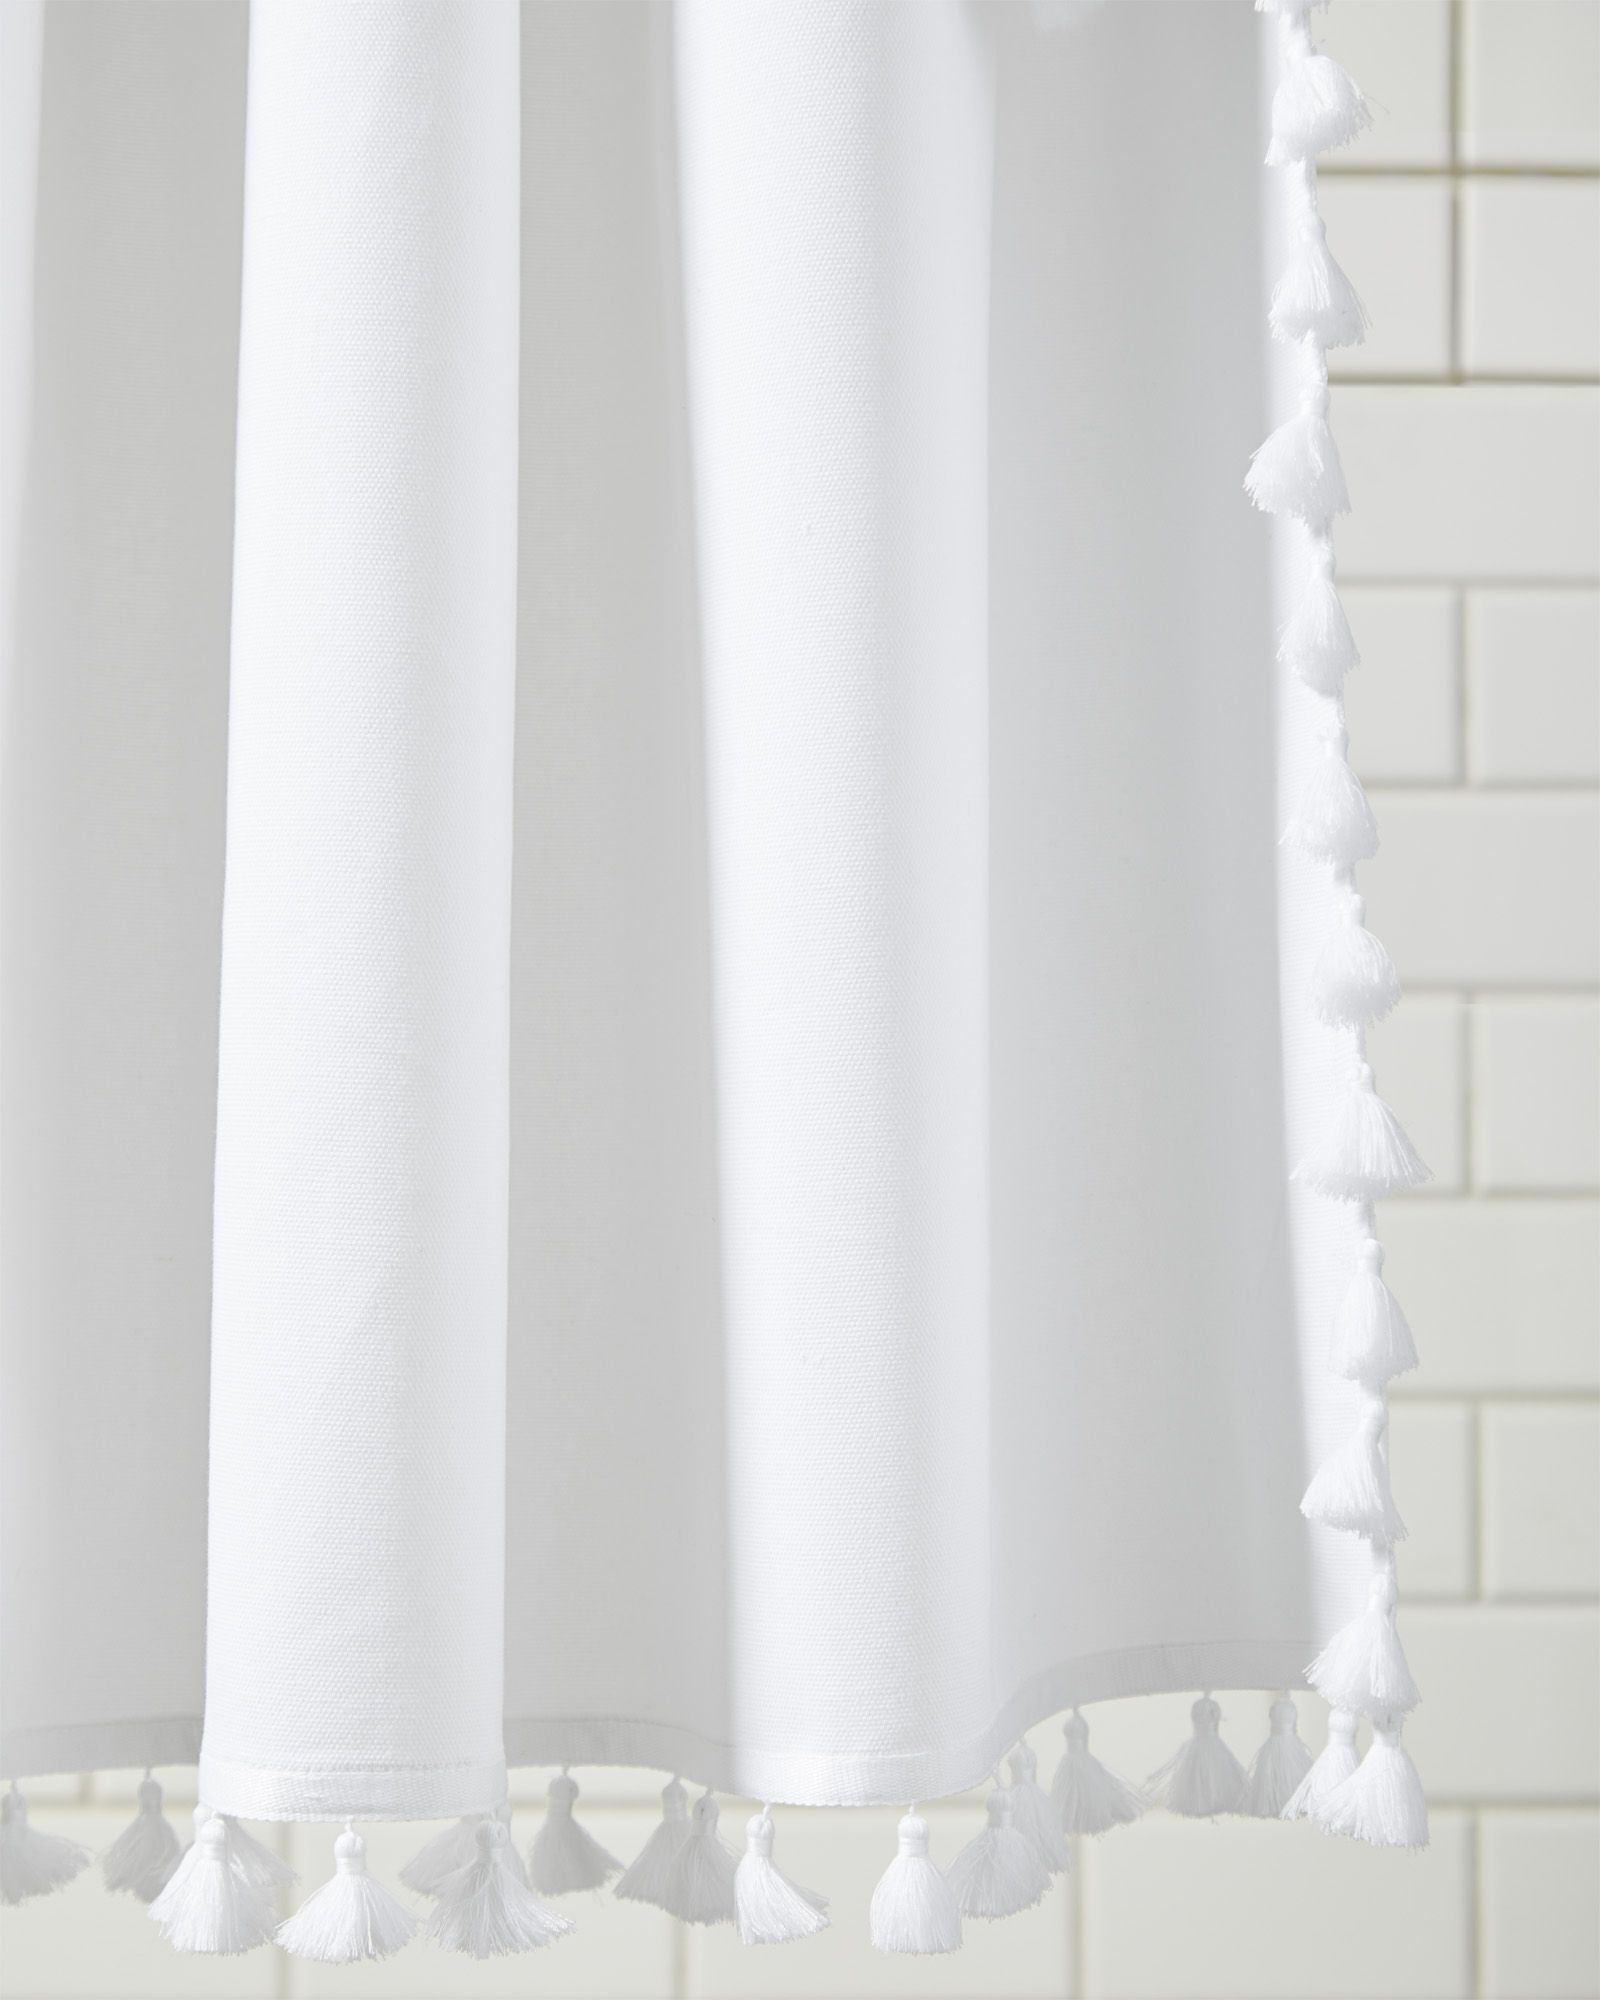 Check Out The French Tassel Shower Curtain And Rest Of Our Unique Curtains At Serena Lily